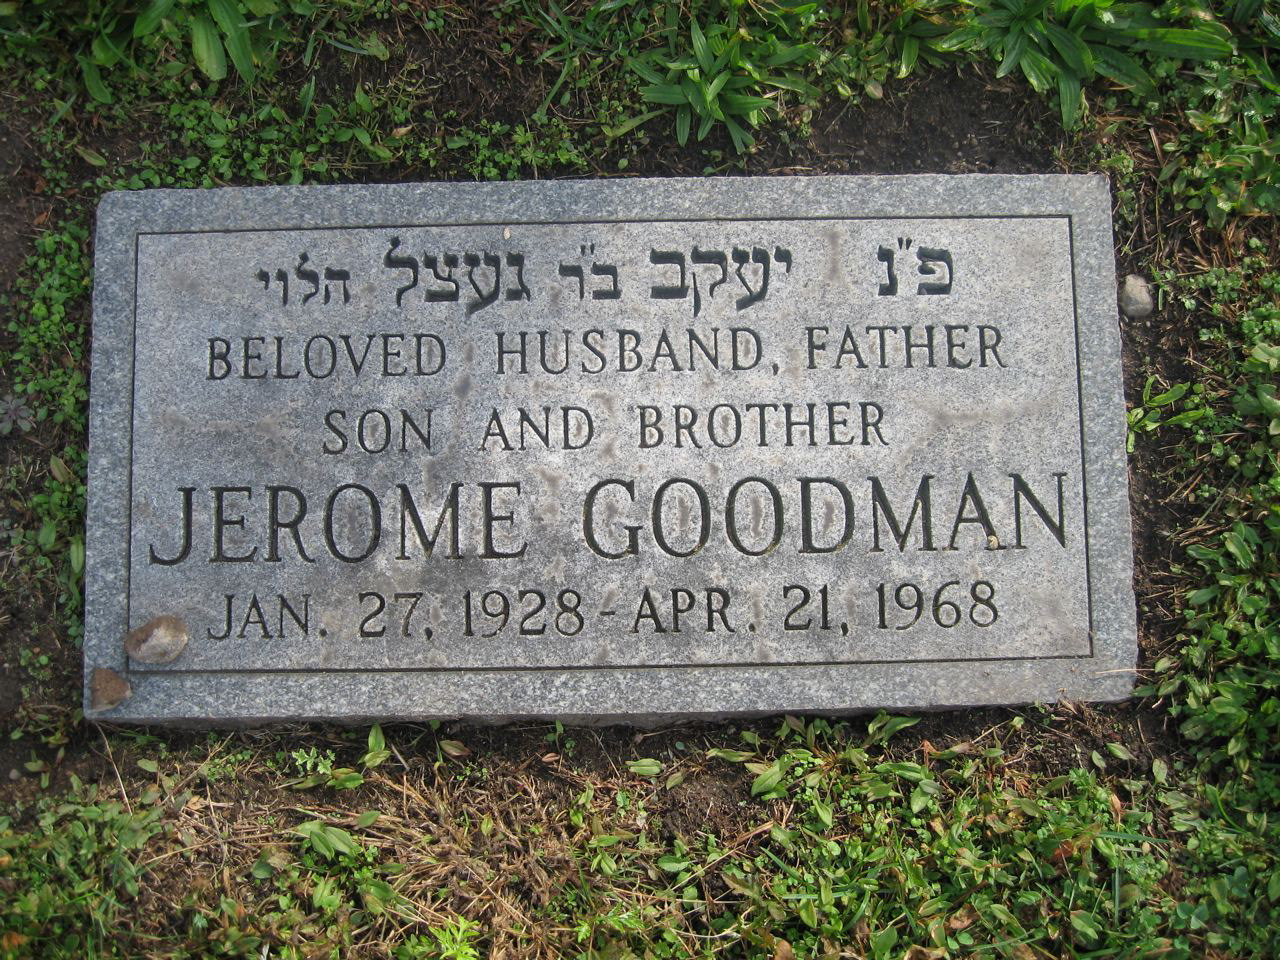 Jerome Goodman